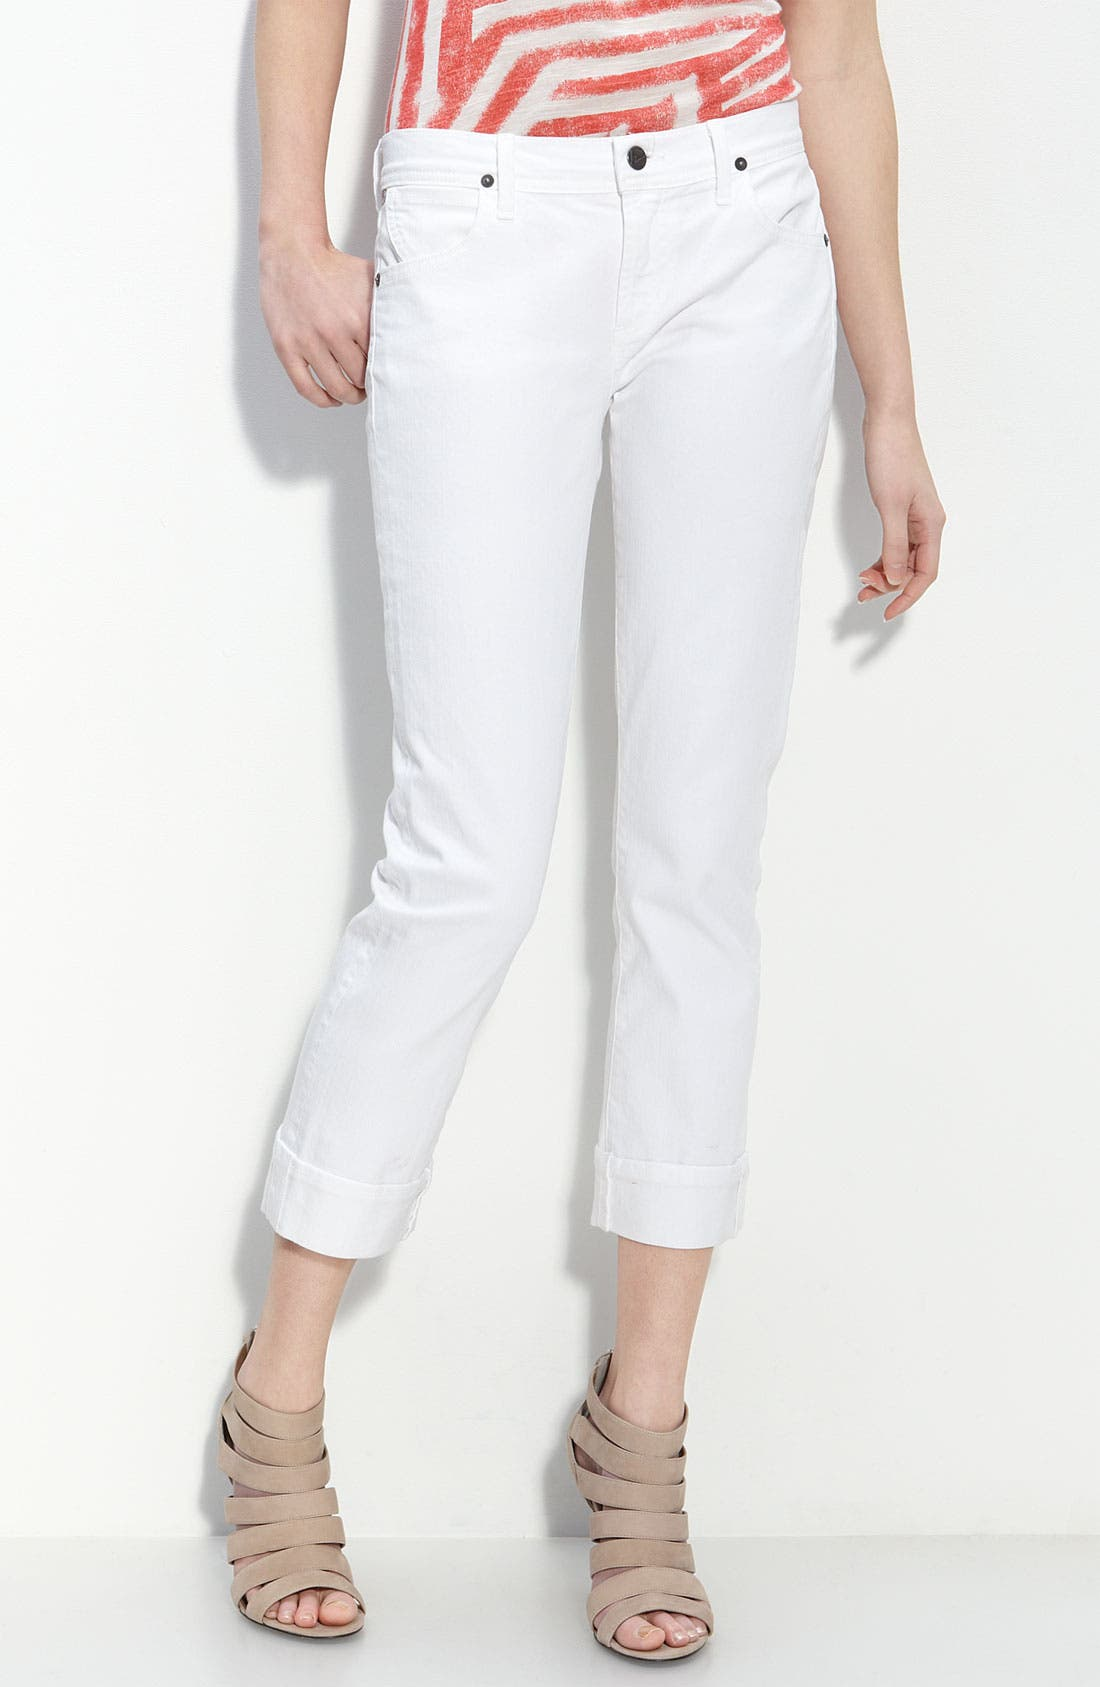 Main Image - Citizens of Humanity 'Dani' Stretch Denim Capri Pants (Santorini Wash)